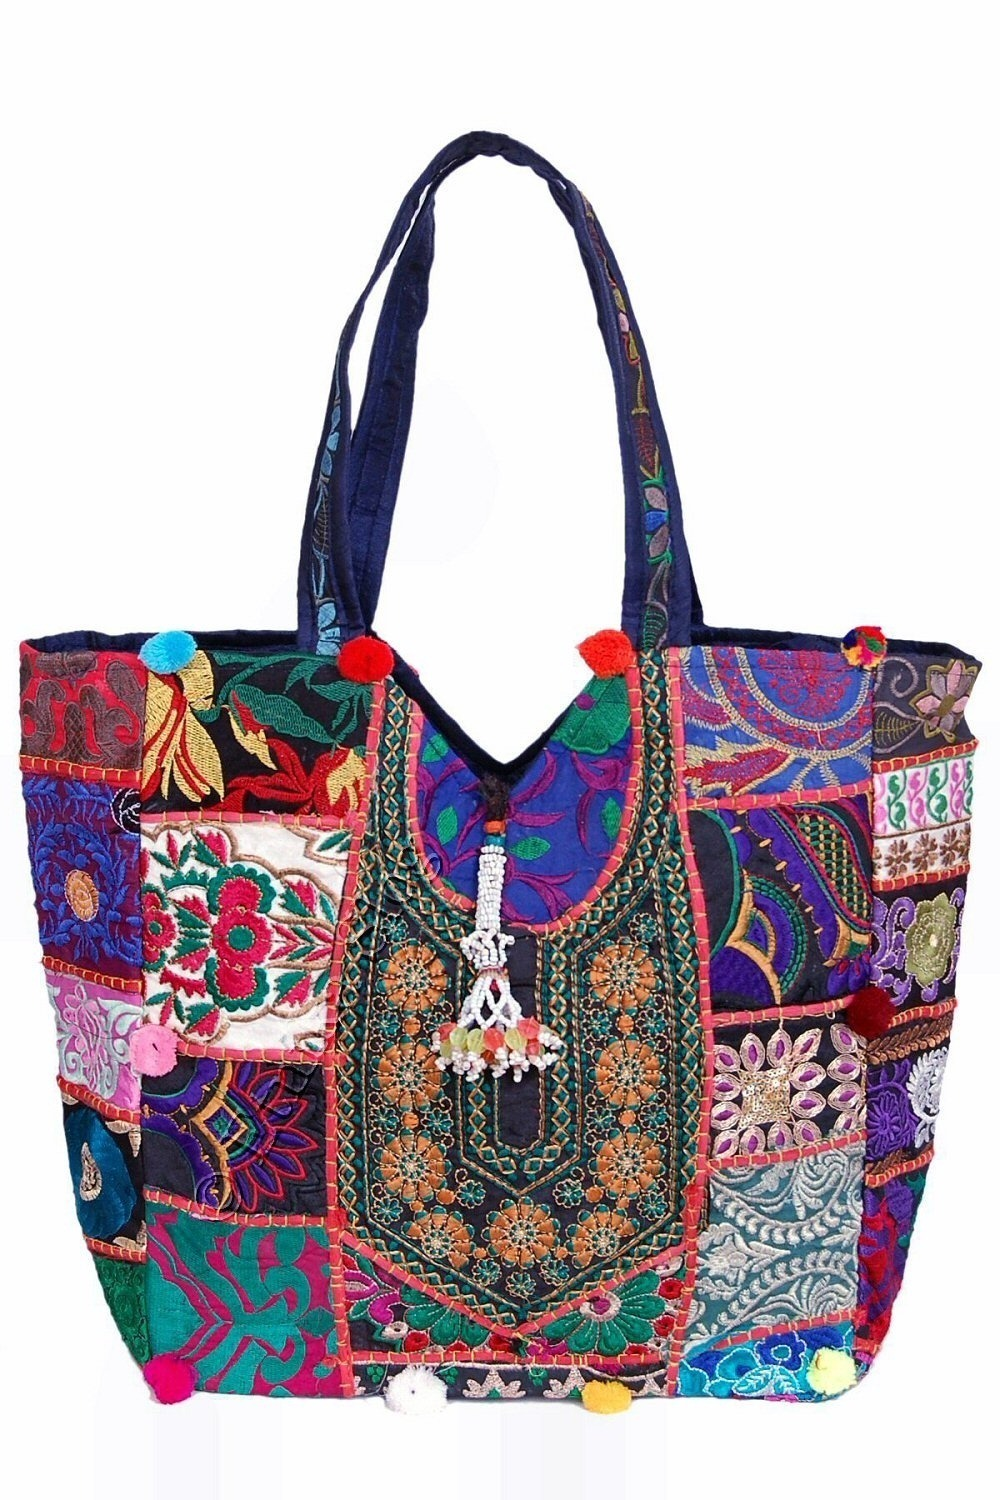 EMBROIDERED SHOULDER BAGS BS-IN65 - Oriente Import S.r.l.